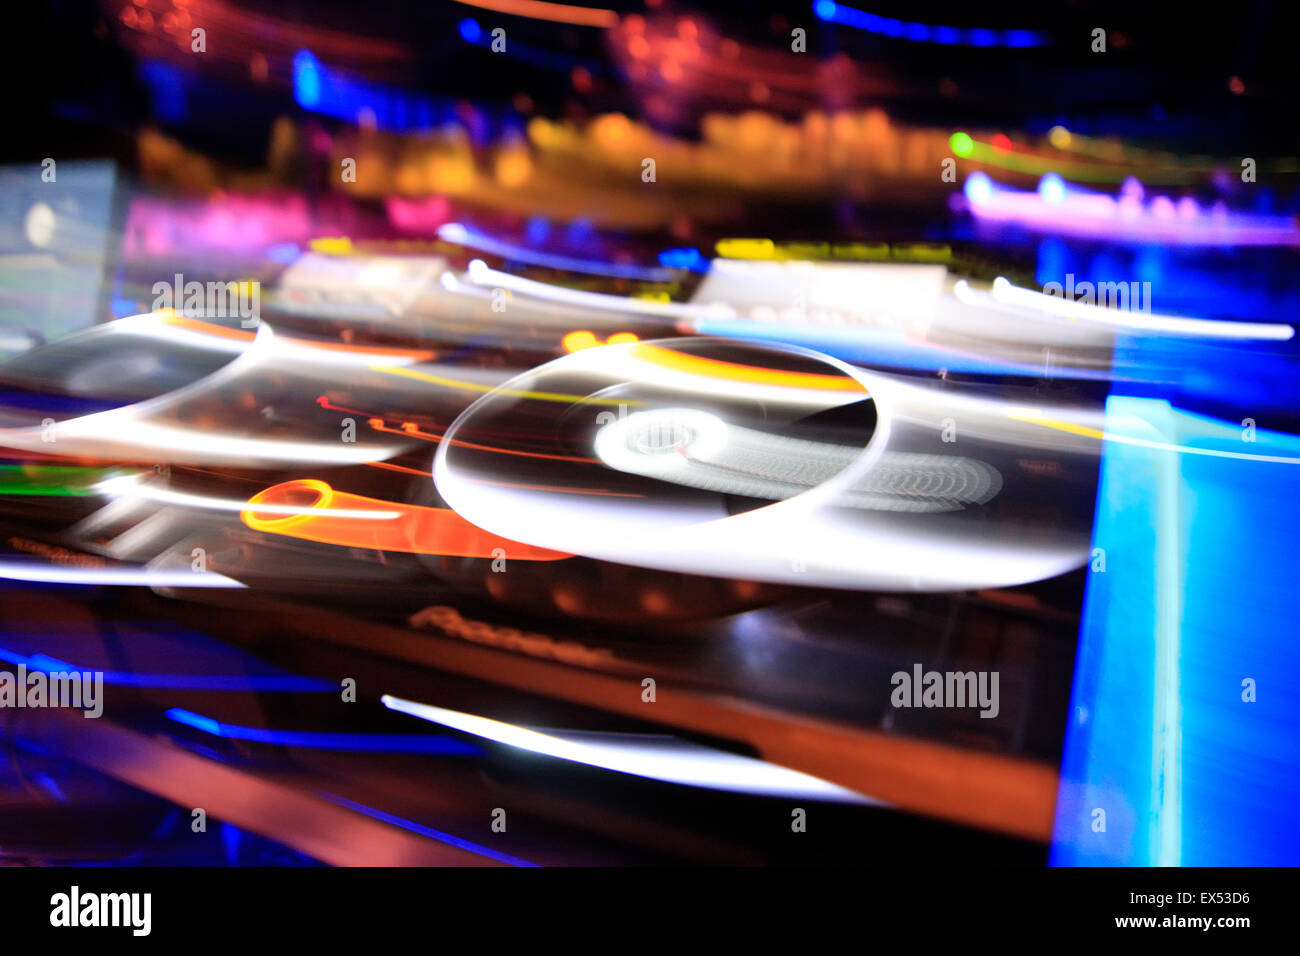 Motion blur image of a deck equipment / sound mixing devices. Athens nightclub, Greece. - Stock Image